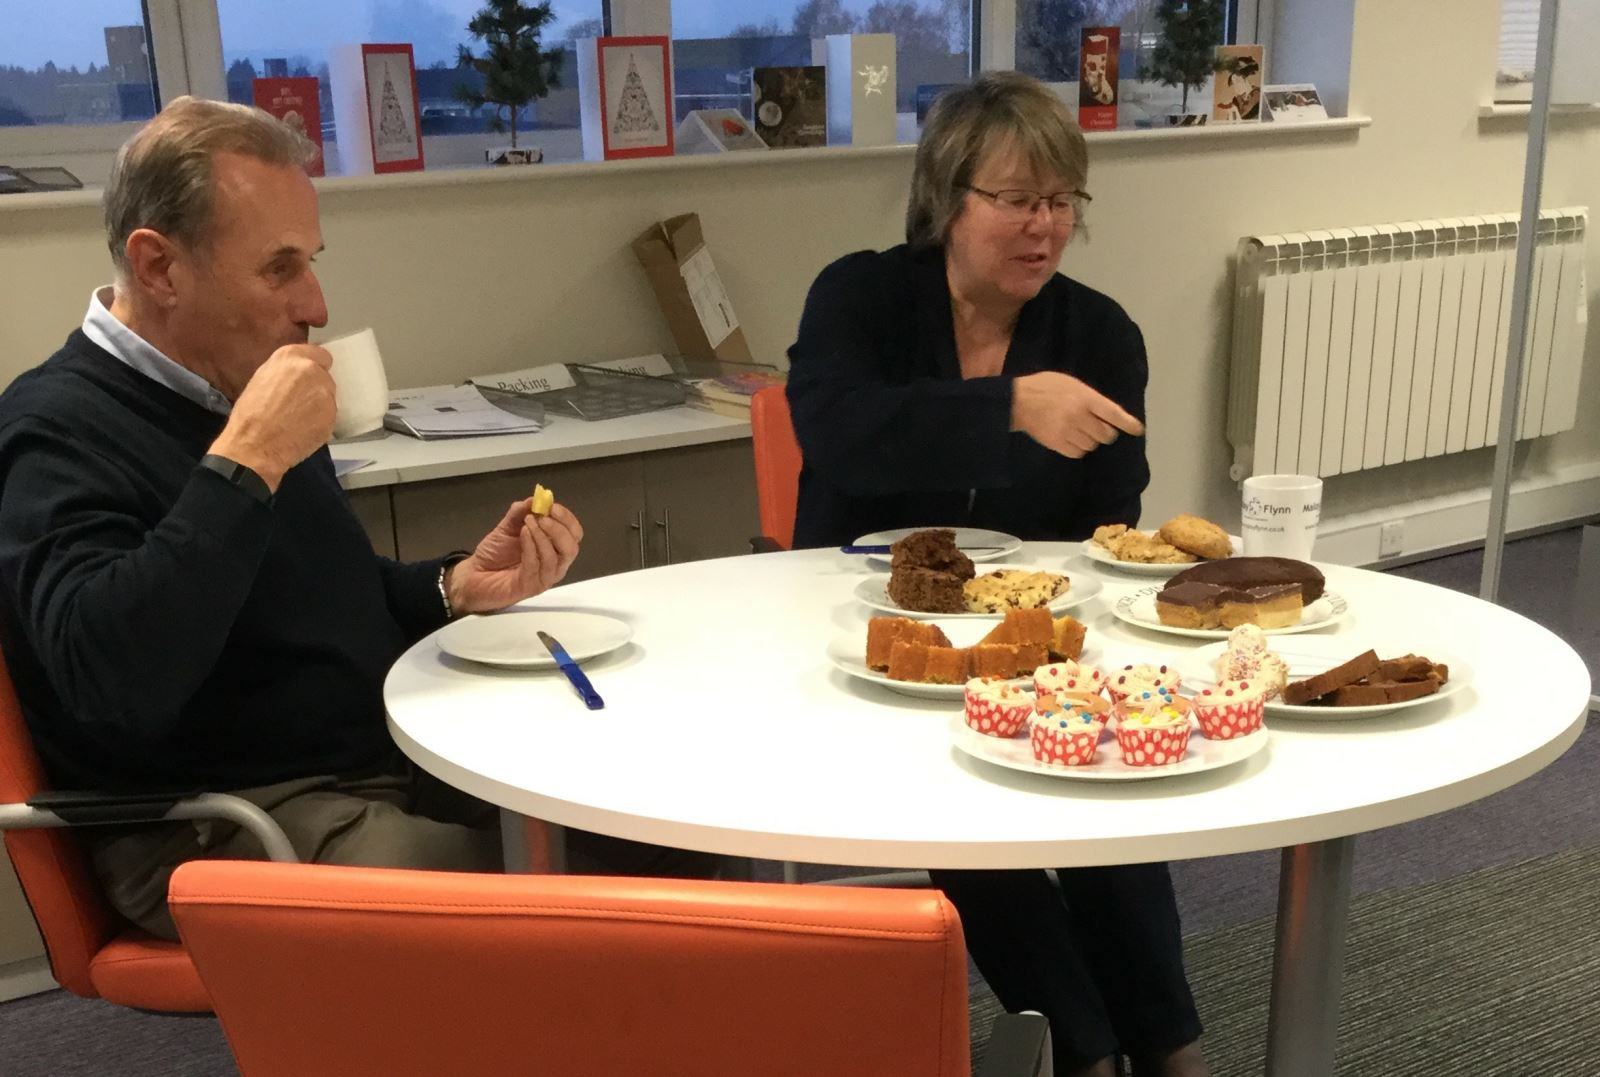 Libby and Graeme judge the bake off challenge